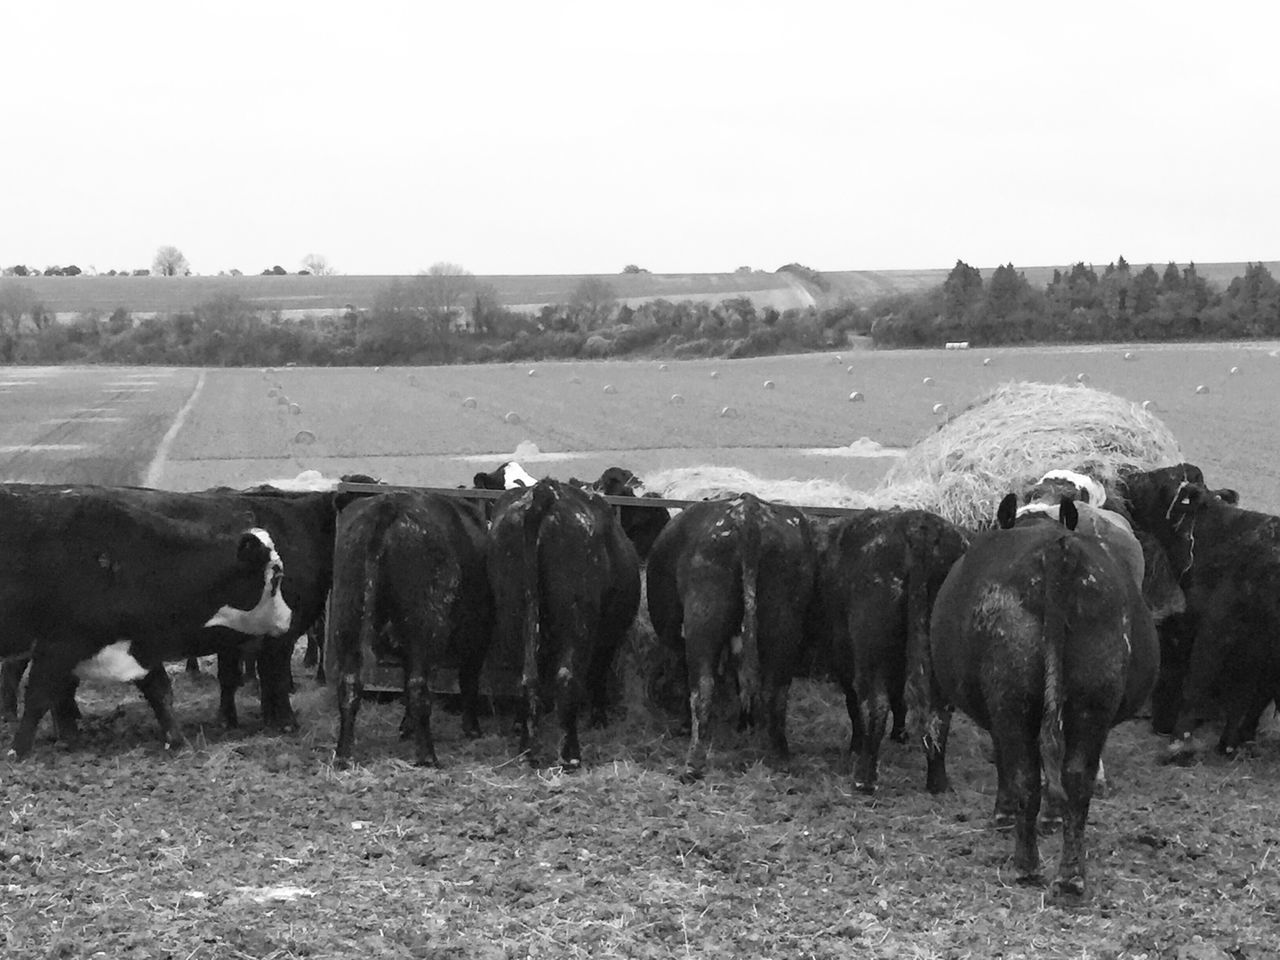 Bottoms Feeding Animals Feeding Time Livestock Domestic Animals Animal Themes Nature Mammal Large Group Of Animals Clear Sky Day Cattle Outdoors No People Grass Beauty In Nature Wiltshire Countryside Wiltshire Farmland Black And White Photography Bnw